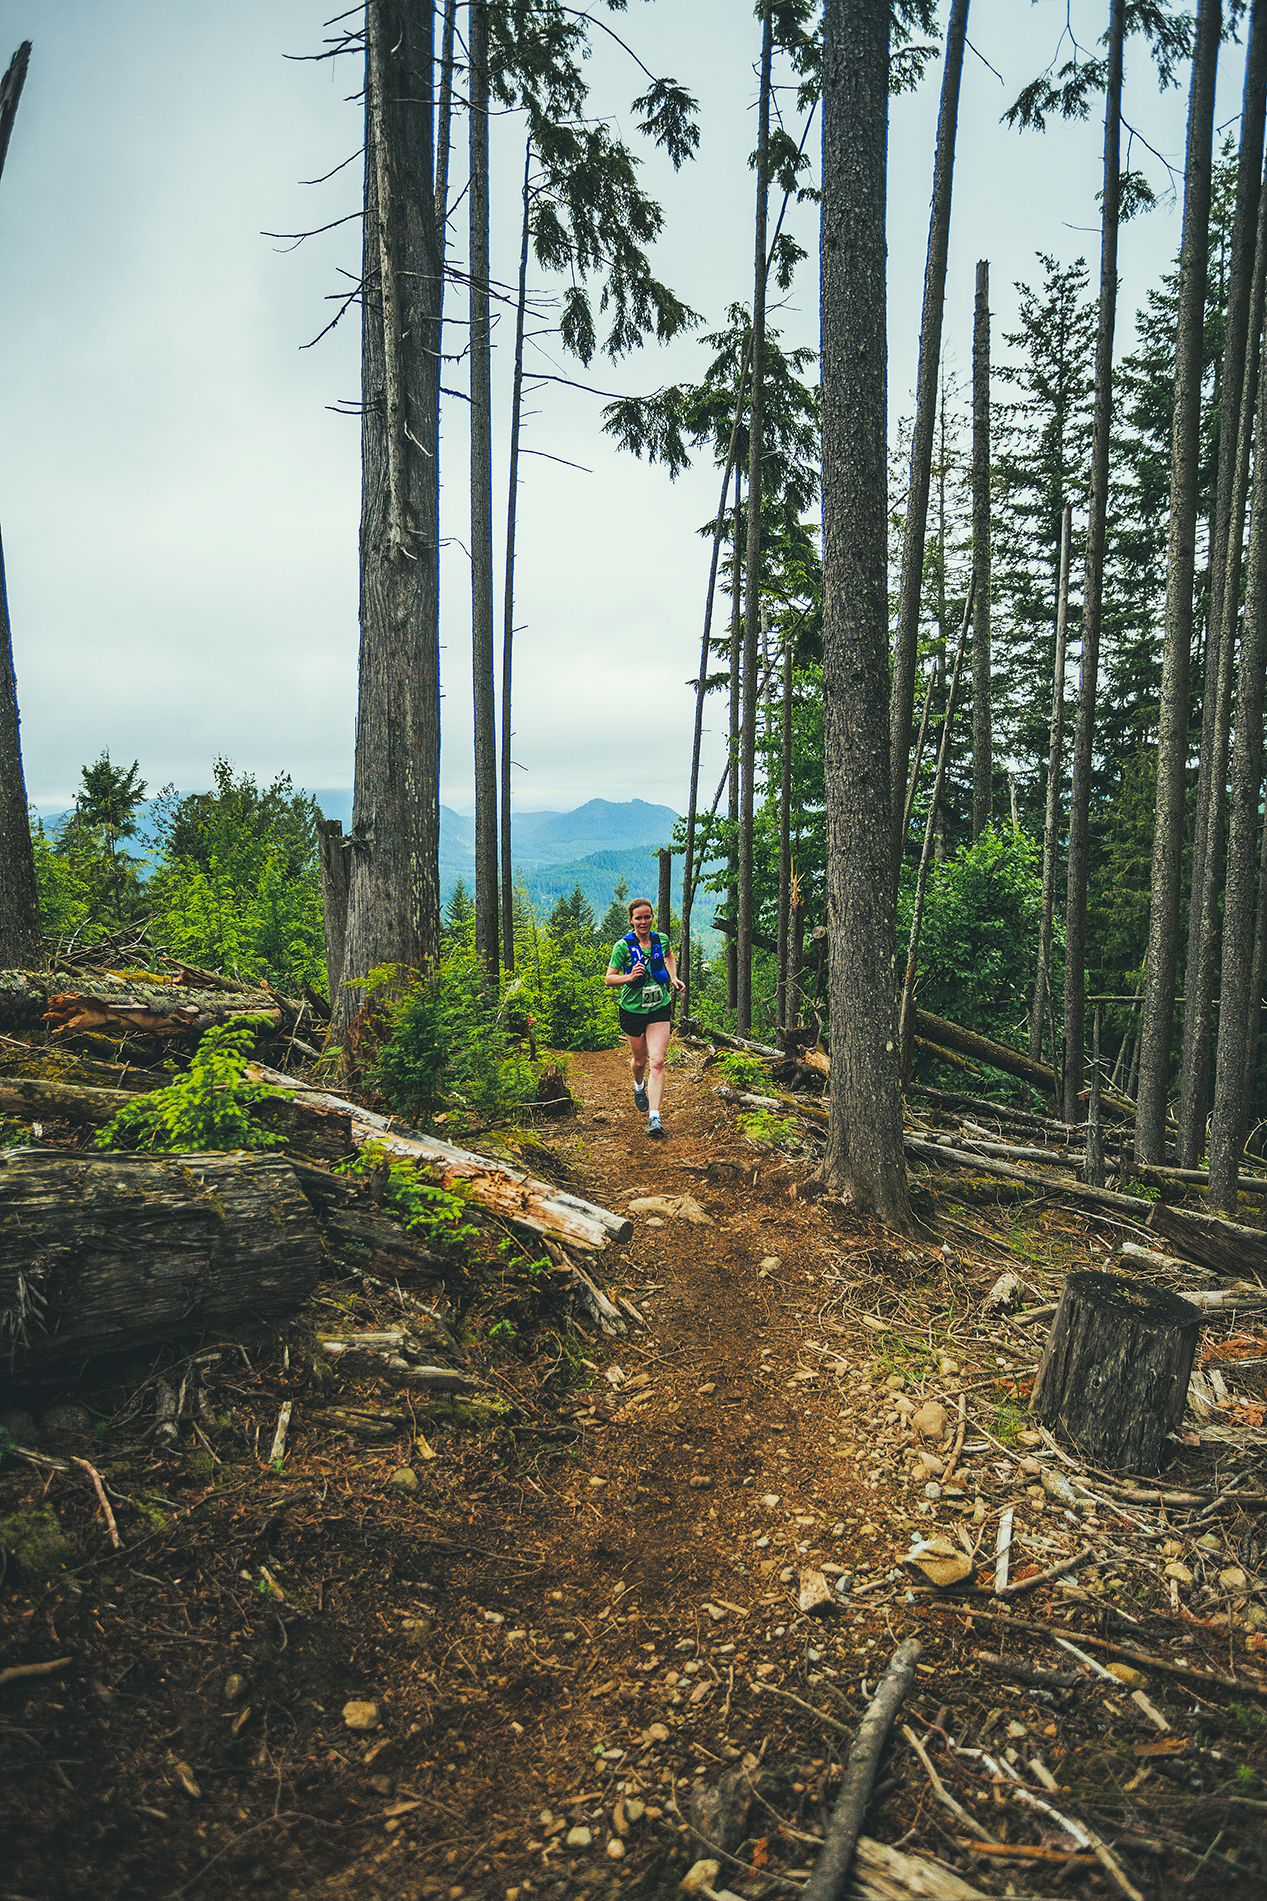 Fraser Valley Trail Races - Bear Mountain - IMG_2641 by Brice Ferre Studio - Vancouver Portrait Adventure and Athlete Photographer.jpg